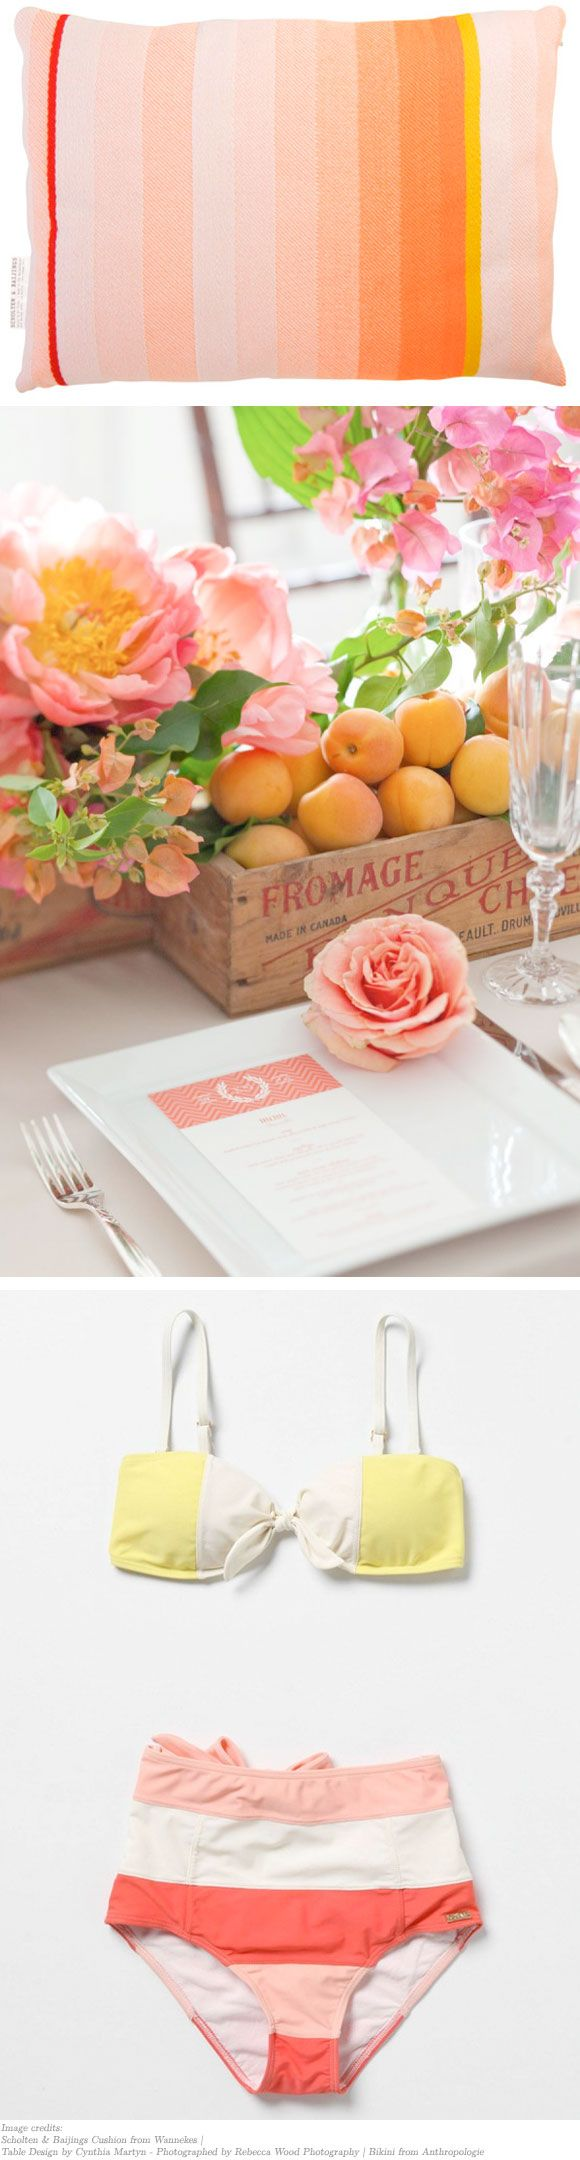 this might be too pastelly, but i like the colors. plus the simple cardboard/wood box with fruit and flowers would make a lovely tablepiece! i also really like the simple card and rose, you could put the menu orthe guest list or anything on that card and it keeps elegance simple :)